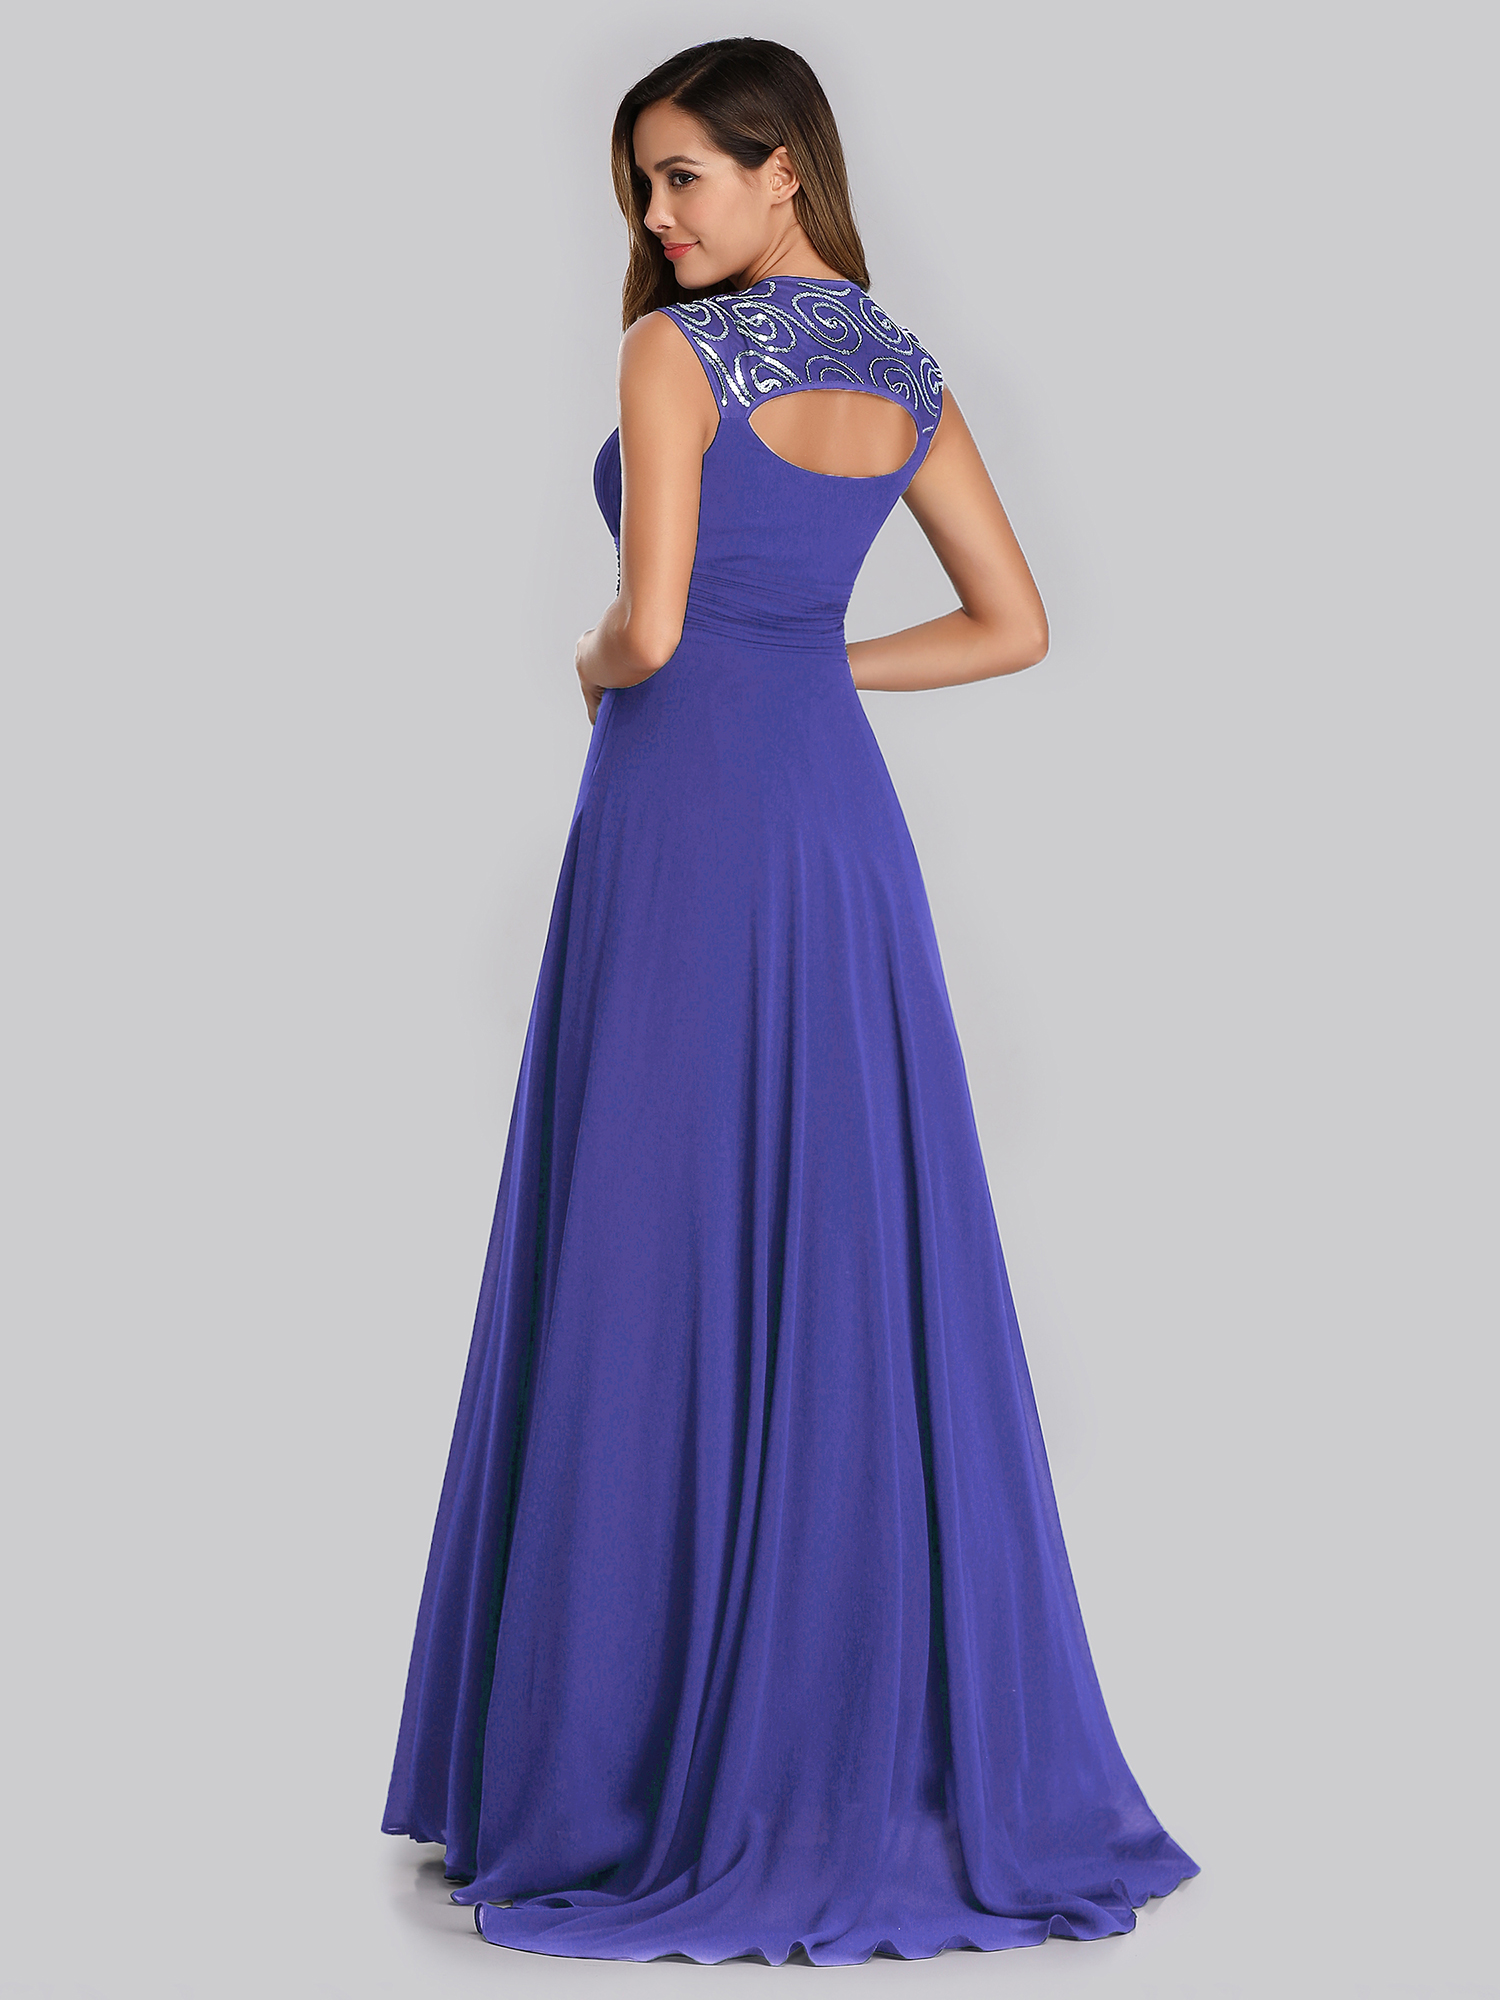 Ever-Pretty-Cap-Sleeve-Bridesmaid-Dresses-Elegant-Long-V-neck-Evening-Gown-09672 thumbnail 48